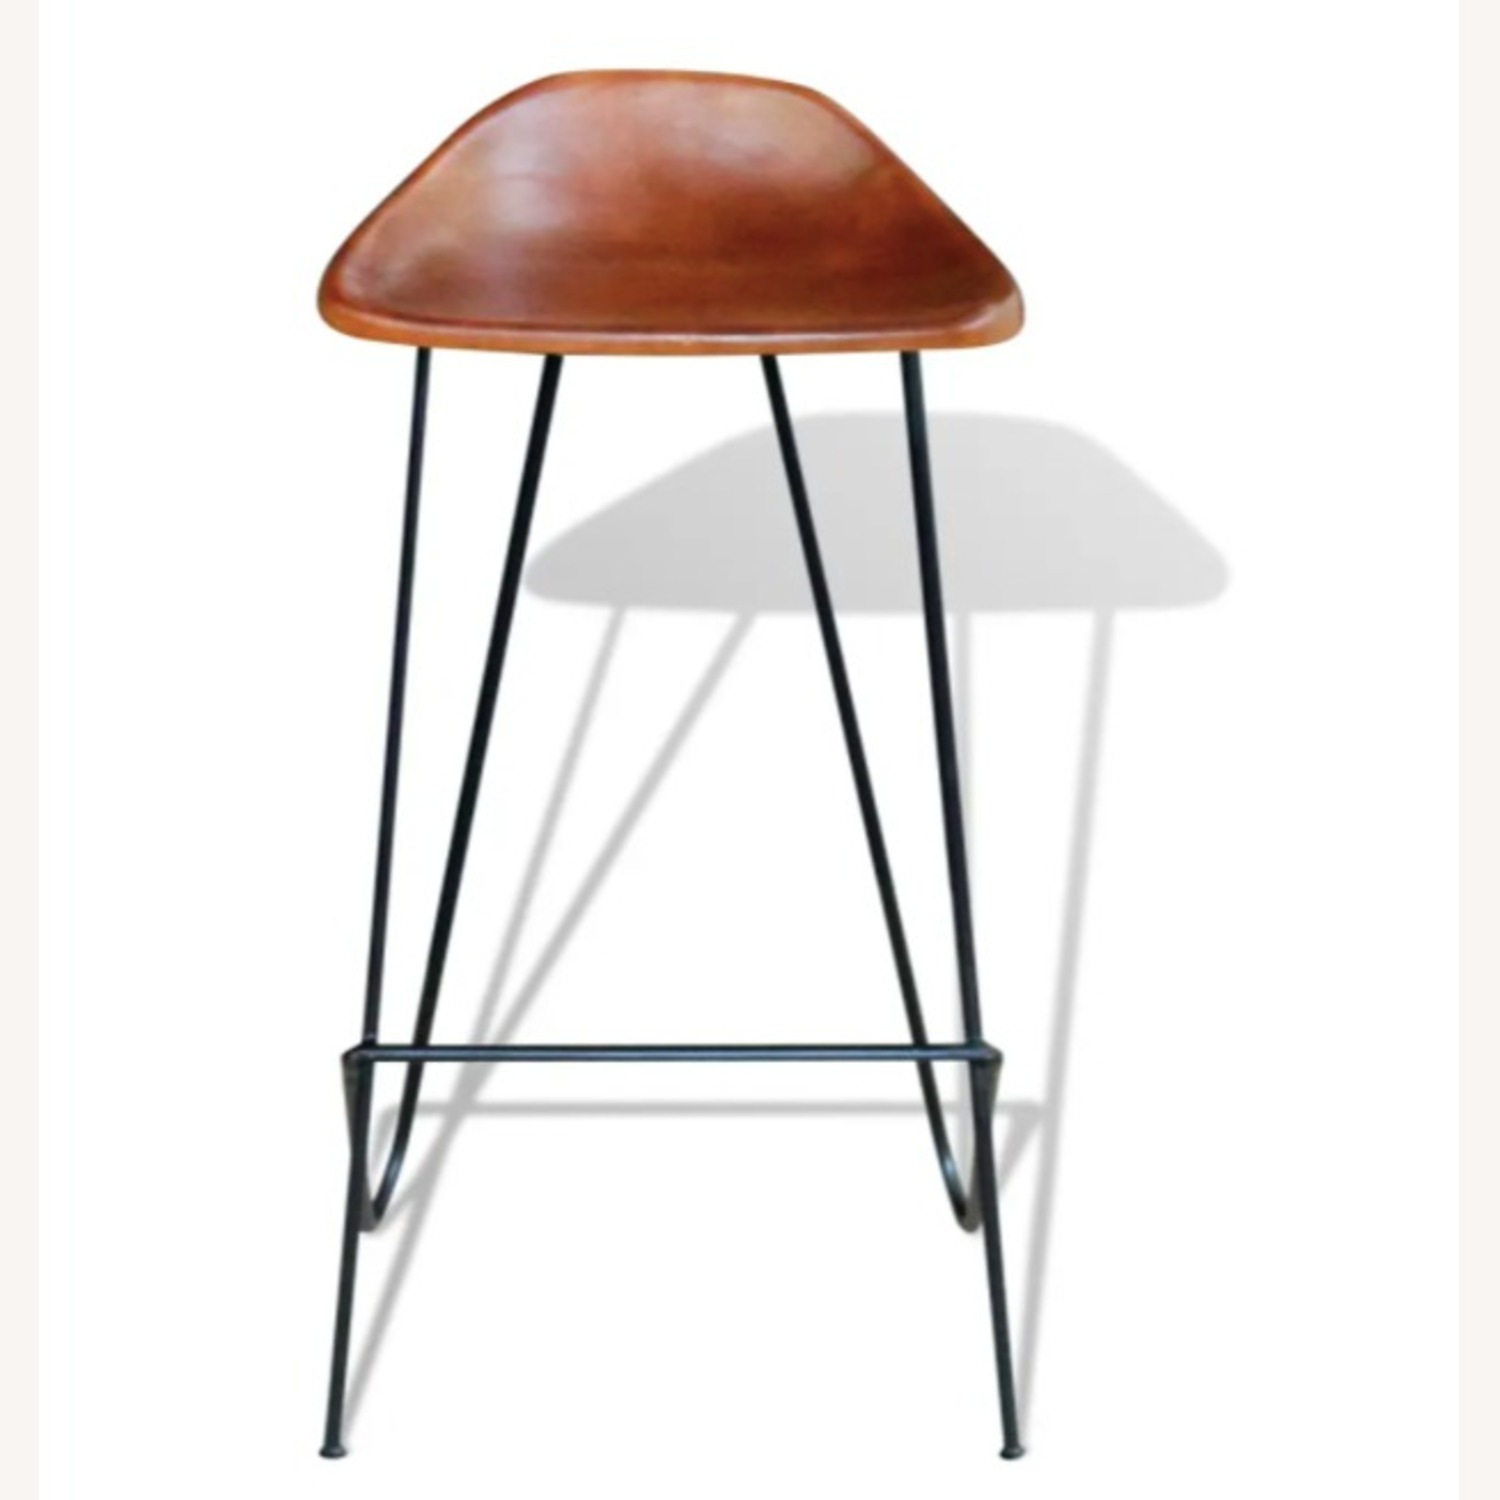 Mid Century Modern Set of 4 Brown Leather Stools - image-2